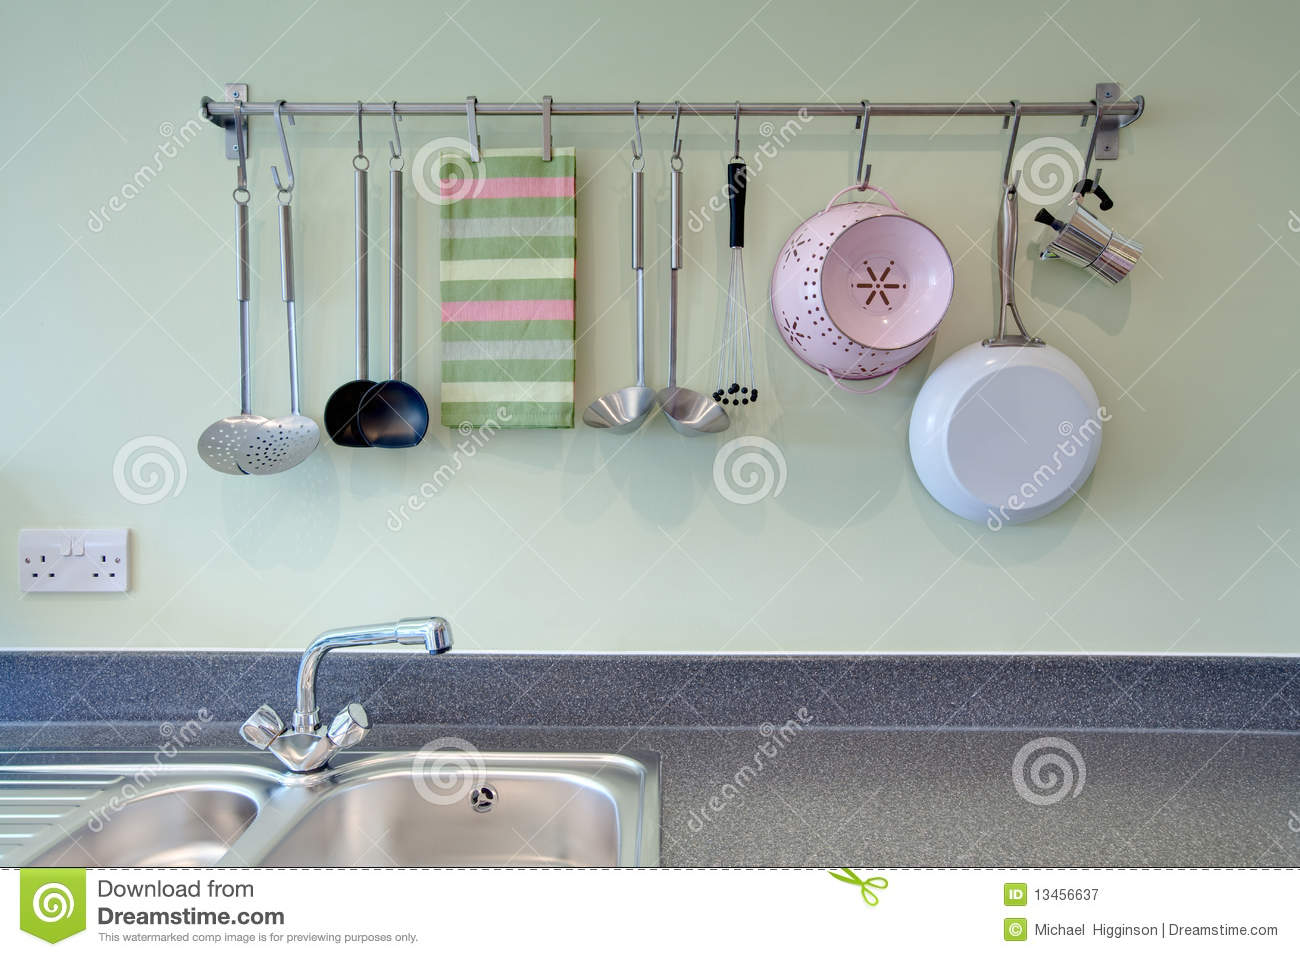 Kitchen Utensil Rack Royalty Free Stock Photography